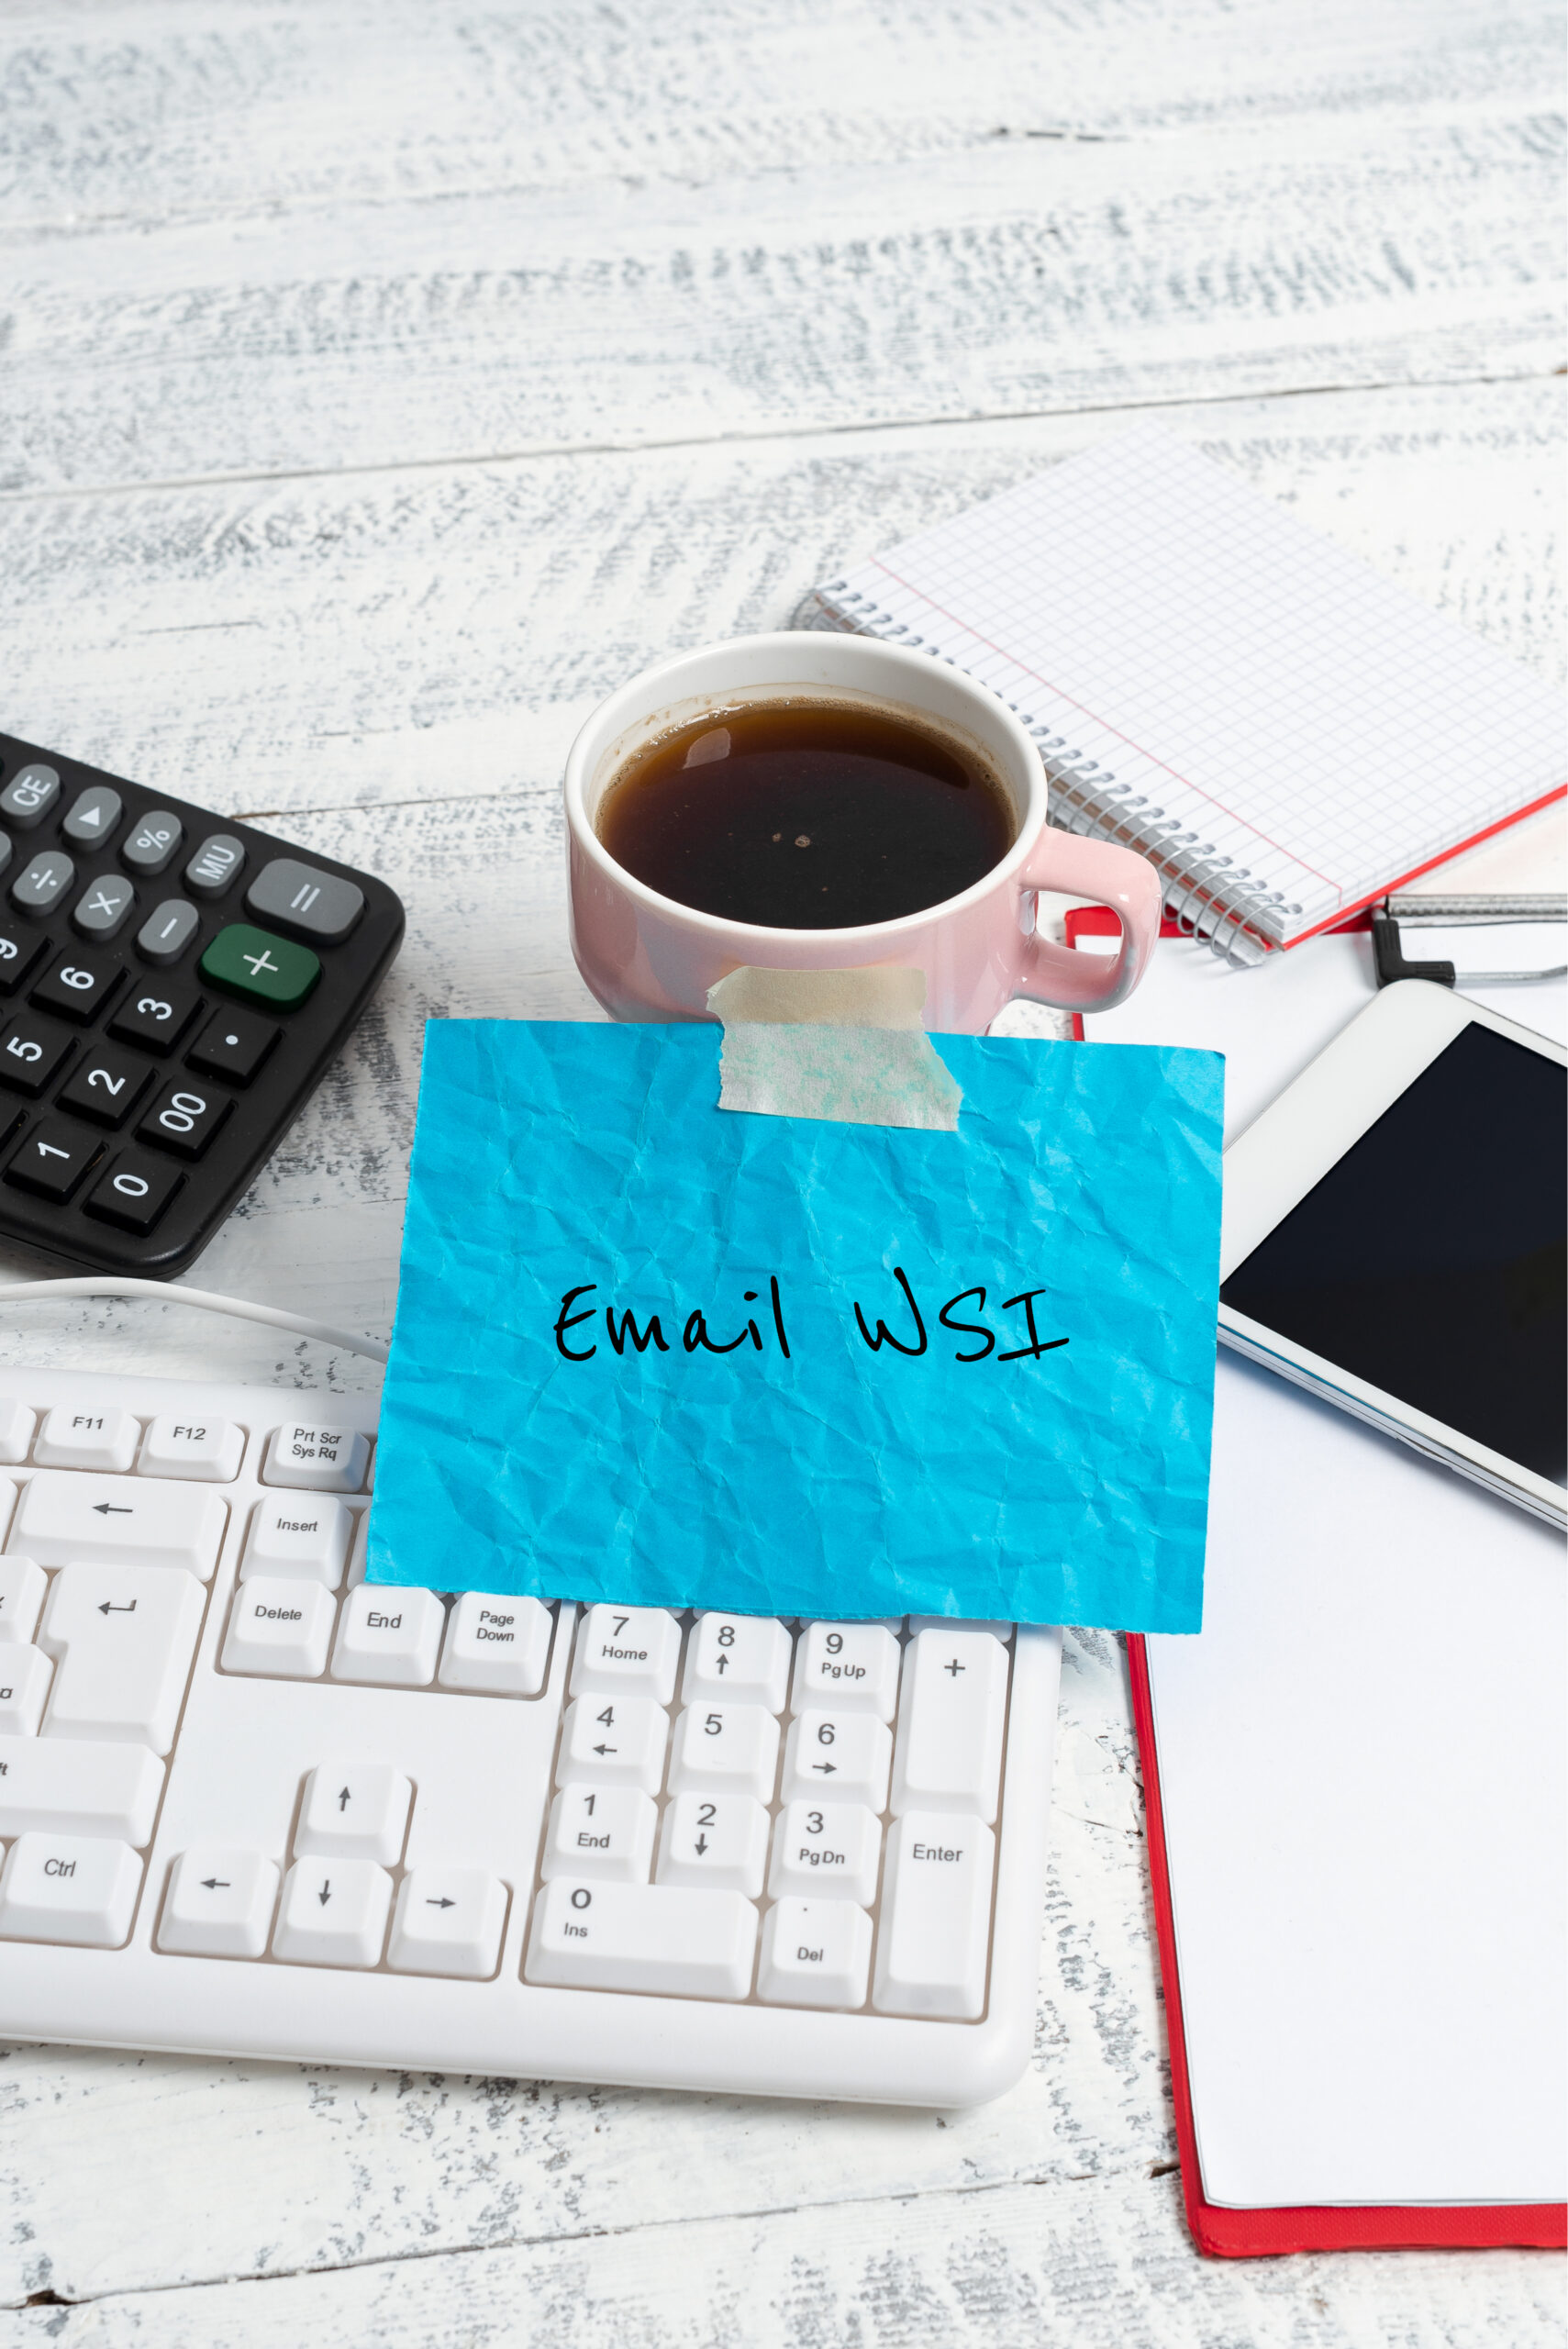 Email WSI Healthy Digital Solutions